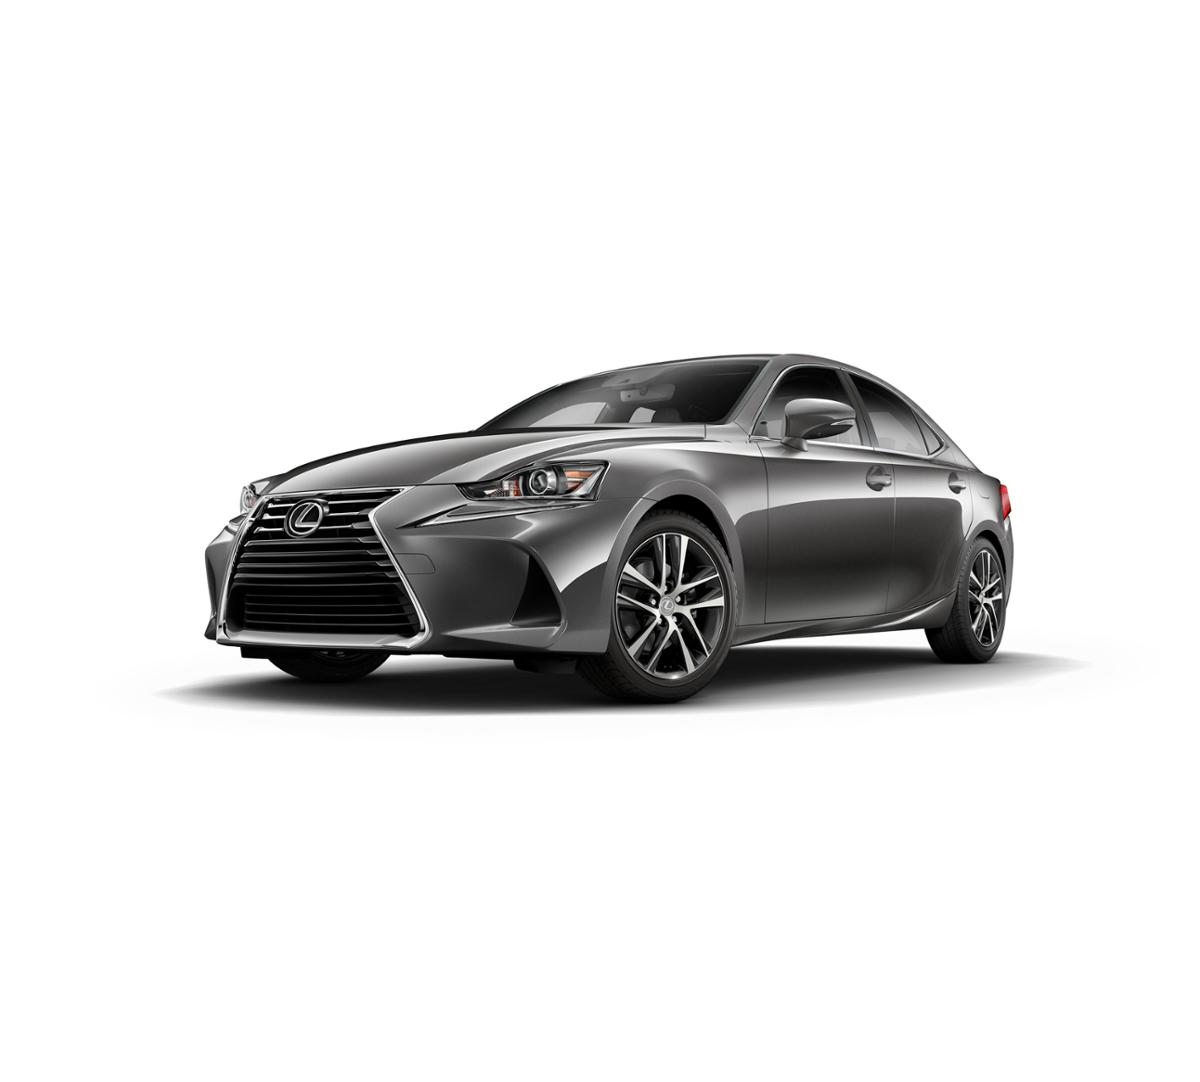 2019 Lexus IS 300 Vehicle Photo in Santa Barbara, CA 93105